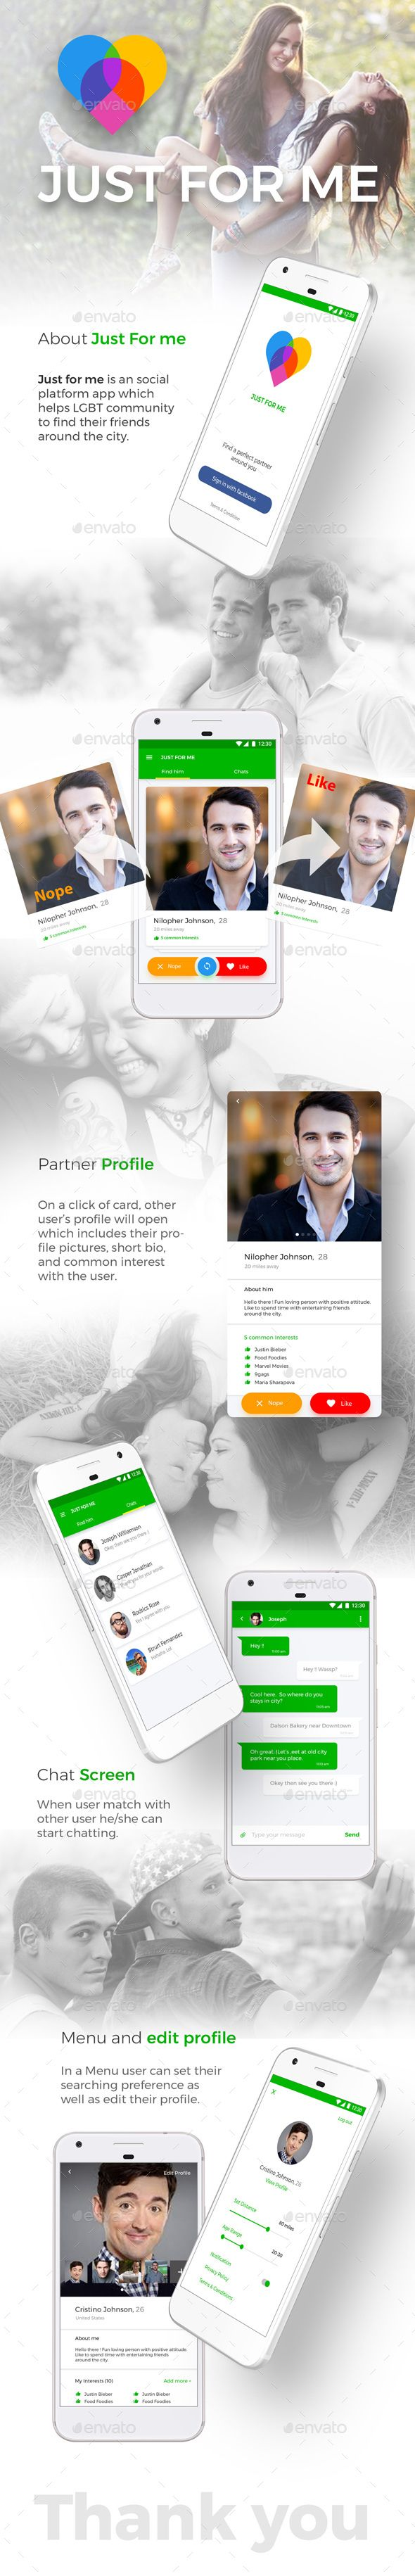 Dating App UI Kit like Tinder | Just For Me for Android + iOS Just for me app UI kit has fully layered and editable, high resolution screens and comes in Photoshop CC 2015 format.  Just for me is an social platform app which helps LGBT community to find their friends around the city.